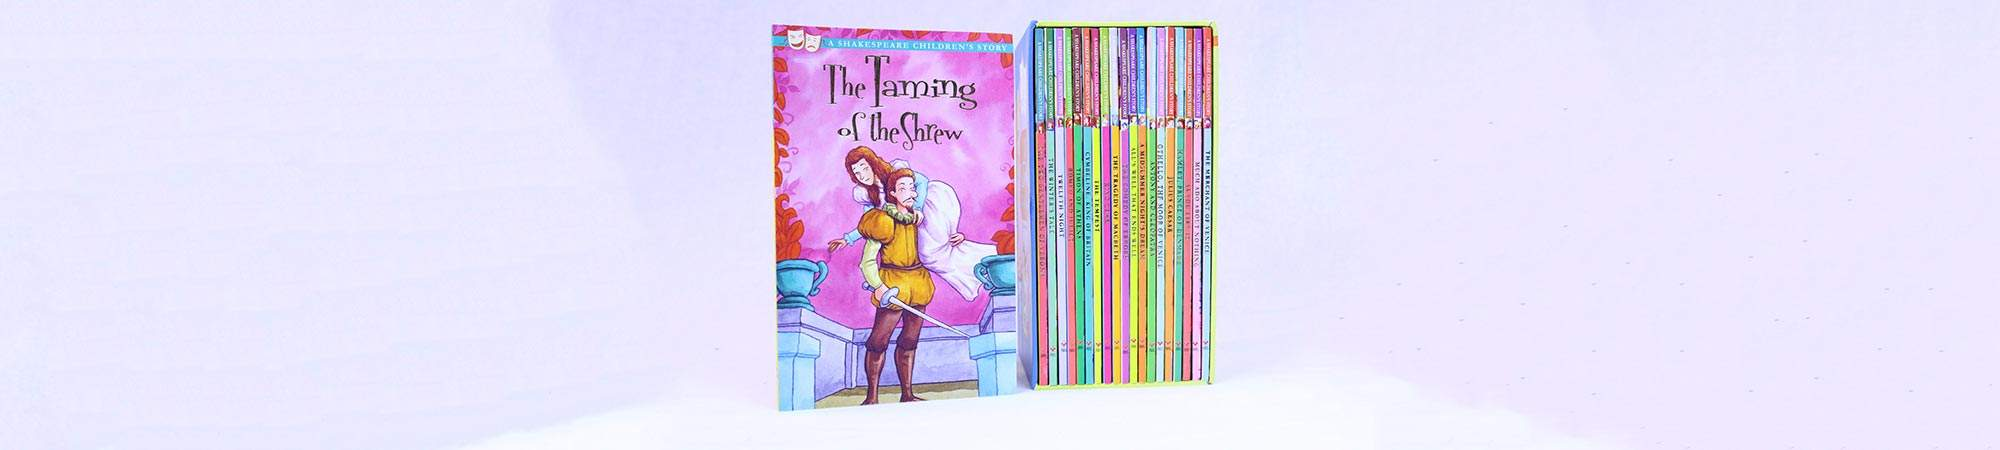 Little Bird 87% off Shakespeare Children's Stories 20 Book Collection - Inspire Imaginations With These Amazing Stories